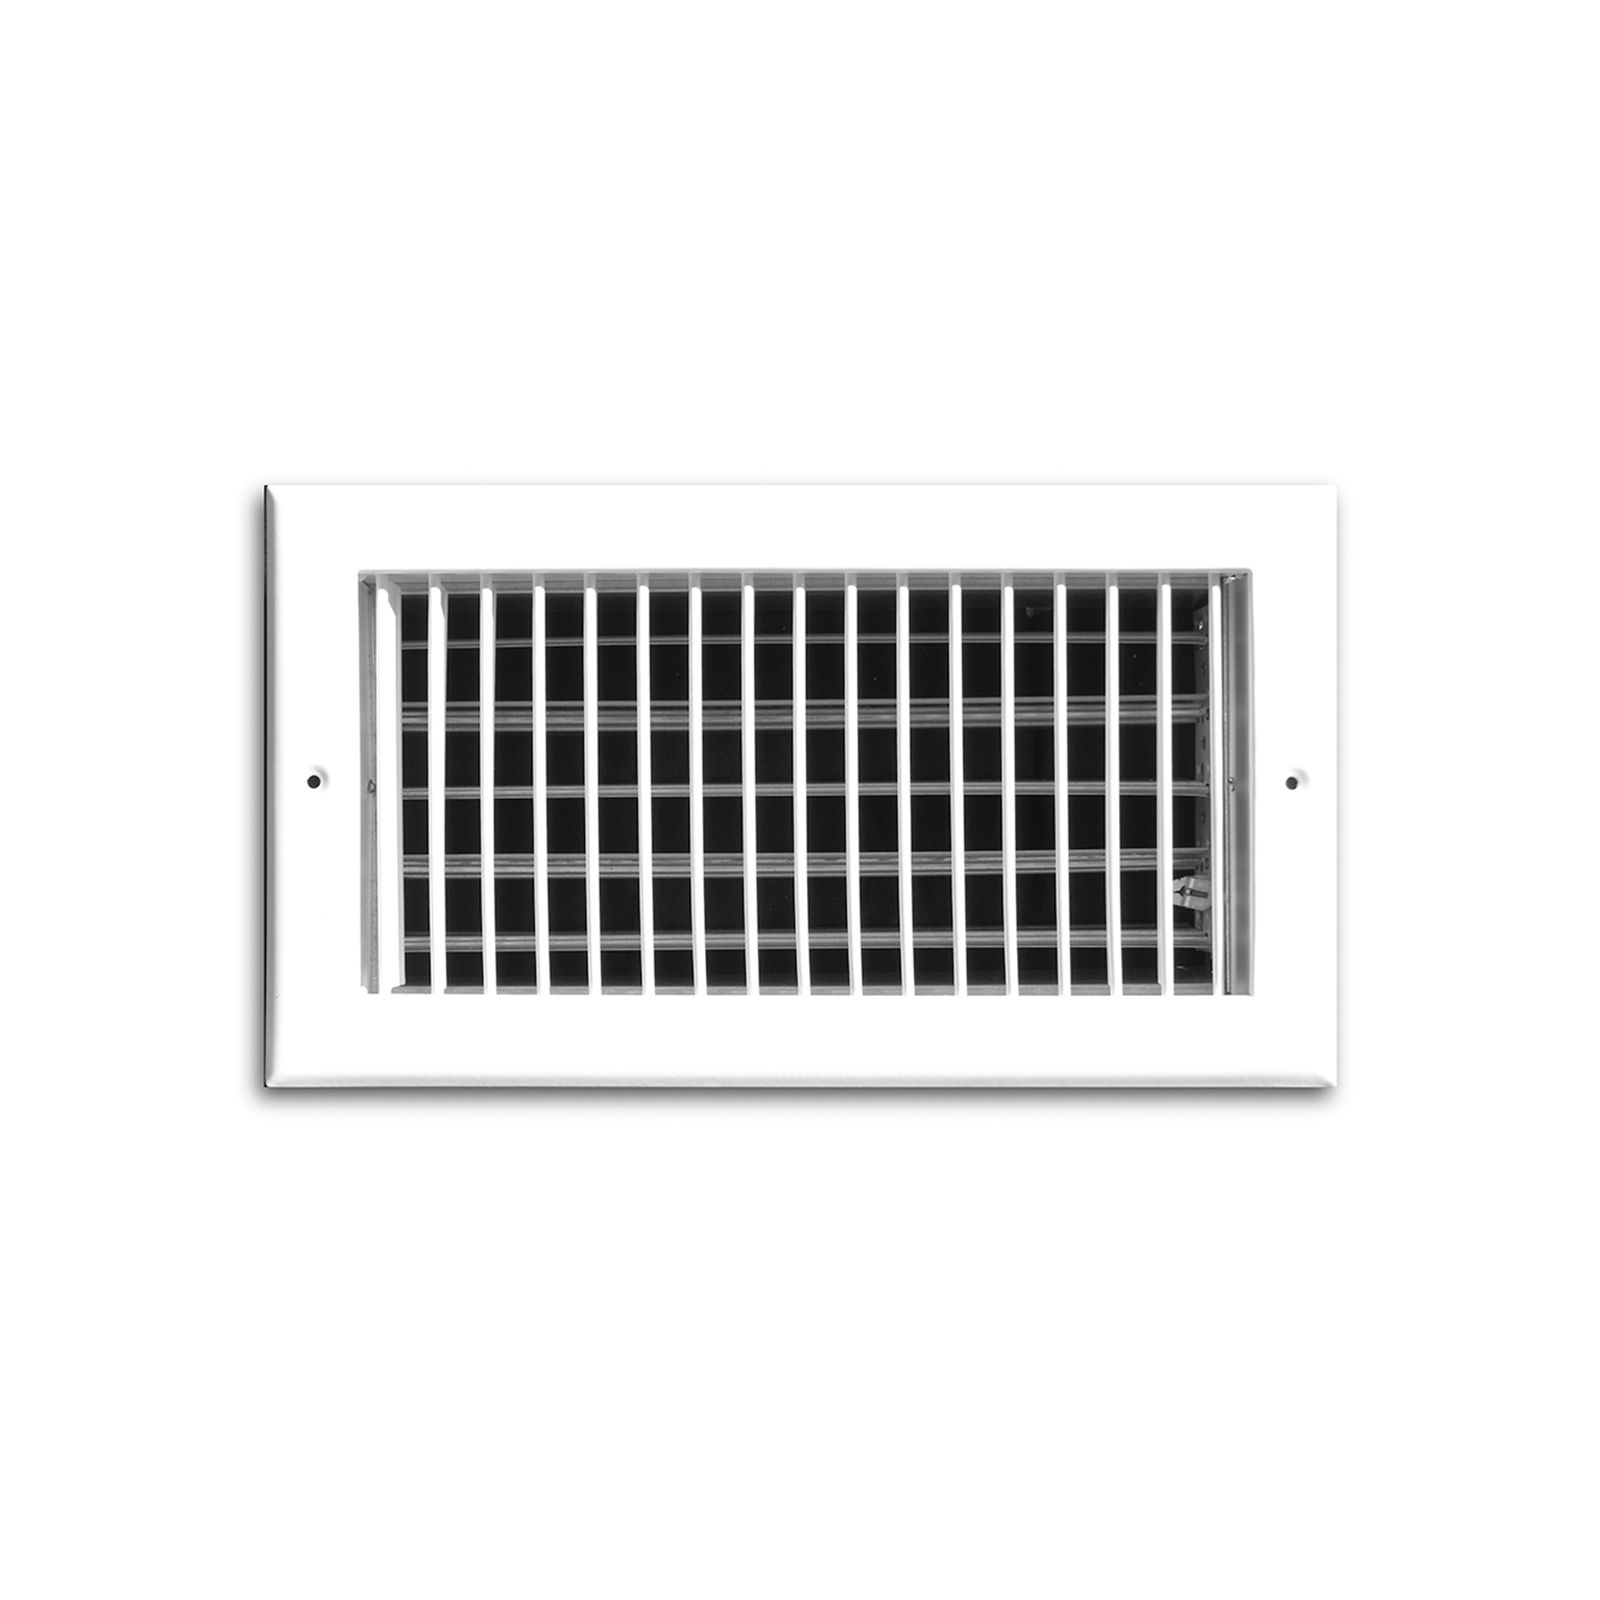 "TRUaire 210VO 10X06 - Steel Adjustable 1-Way Wall/Ceiling Register With Opposed Blade Damper, White, 10"" X 06"""